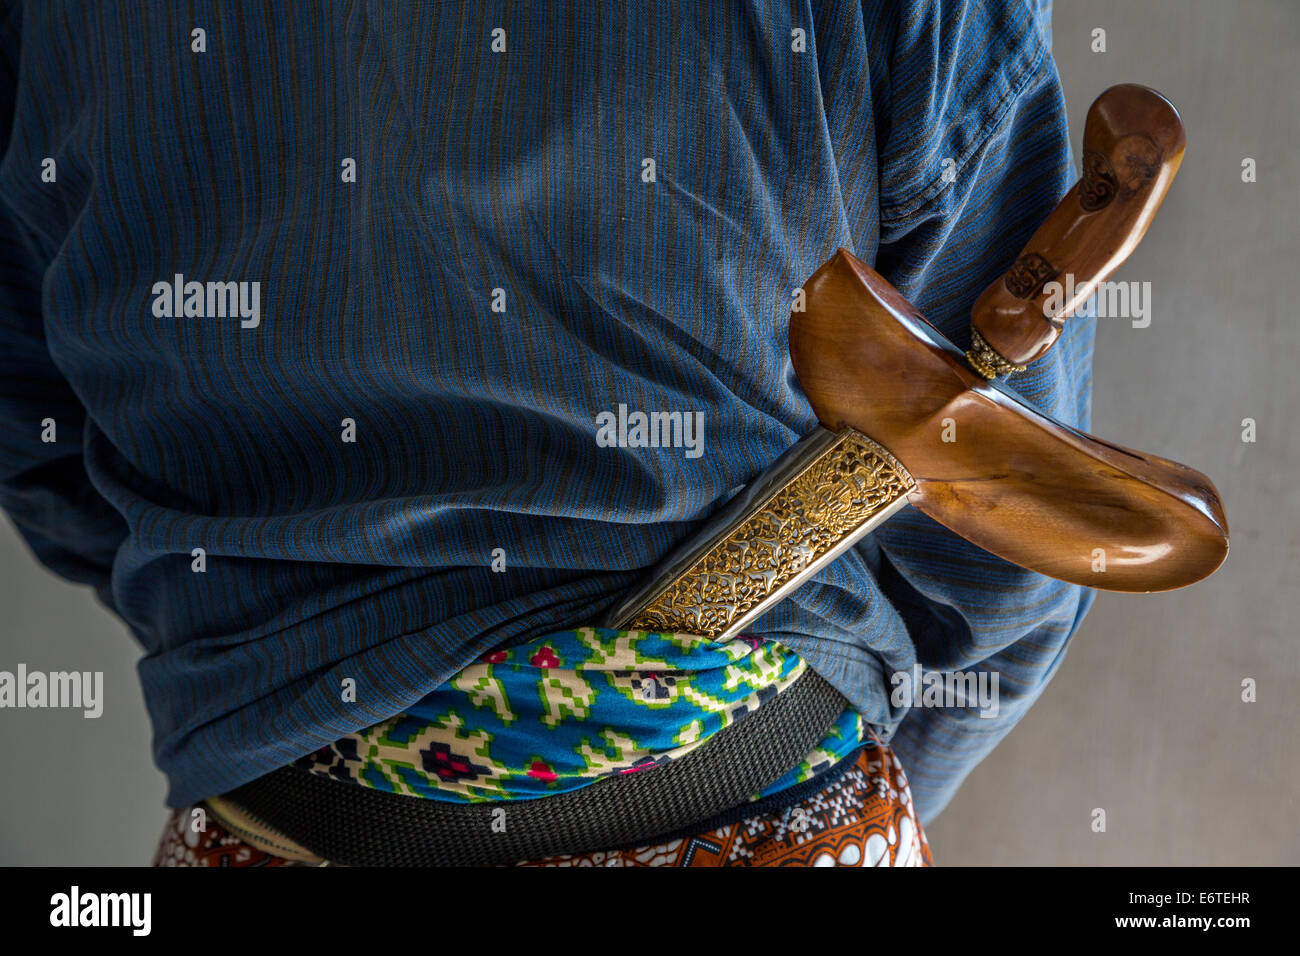 Yogyakarta, Java, Indonesia.  Sultan's Palace Guard with Kris (Traditional Javanese Dagger) Tucked into Waistband. - Stock Image